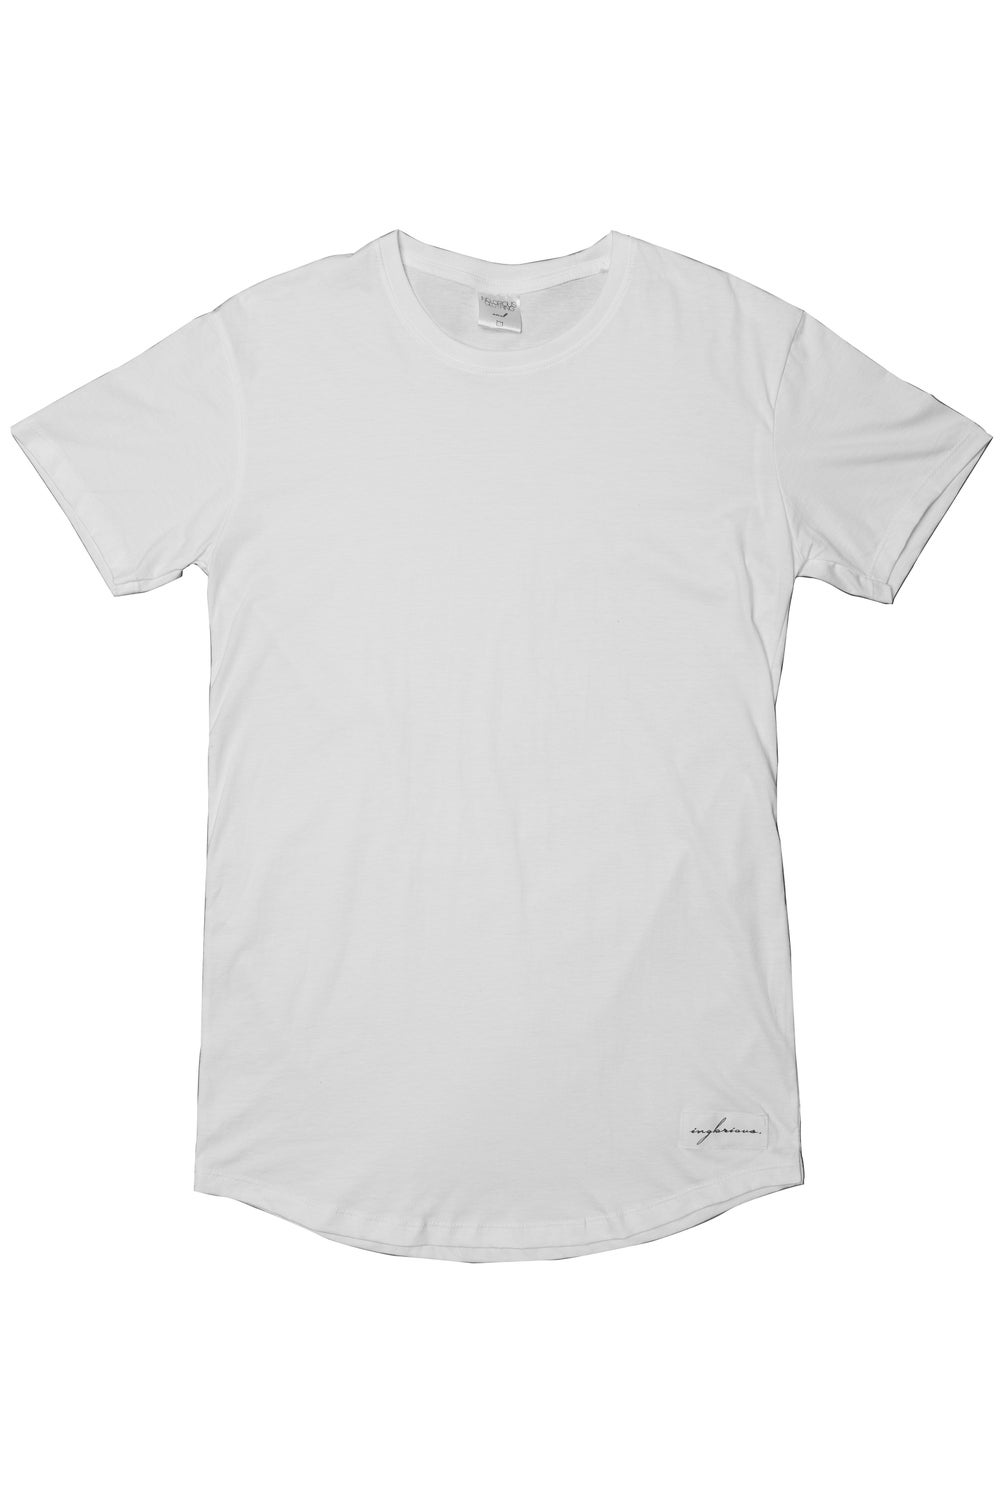 Image of Inglorious Curved Hem (White)